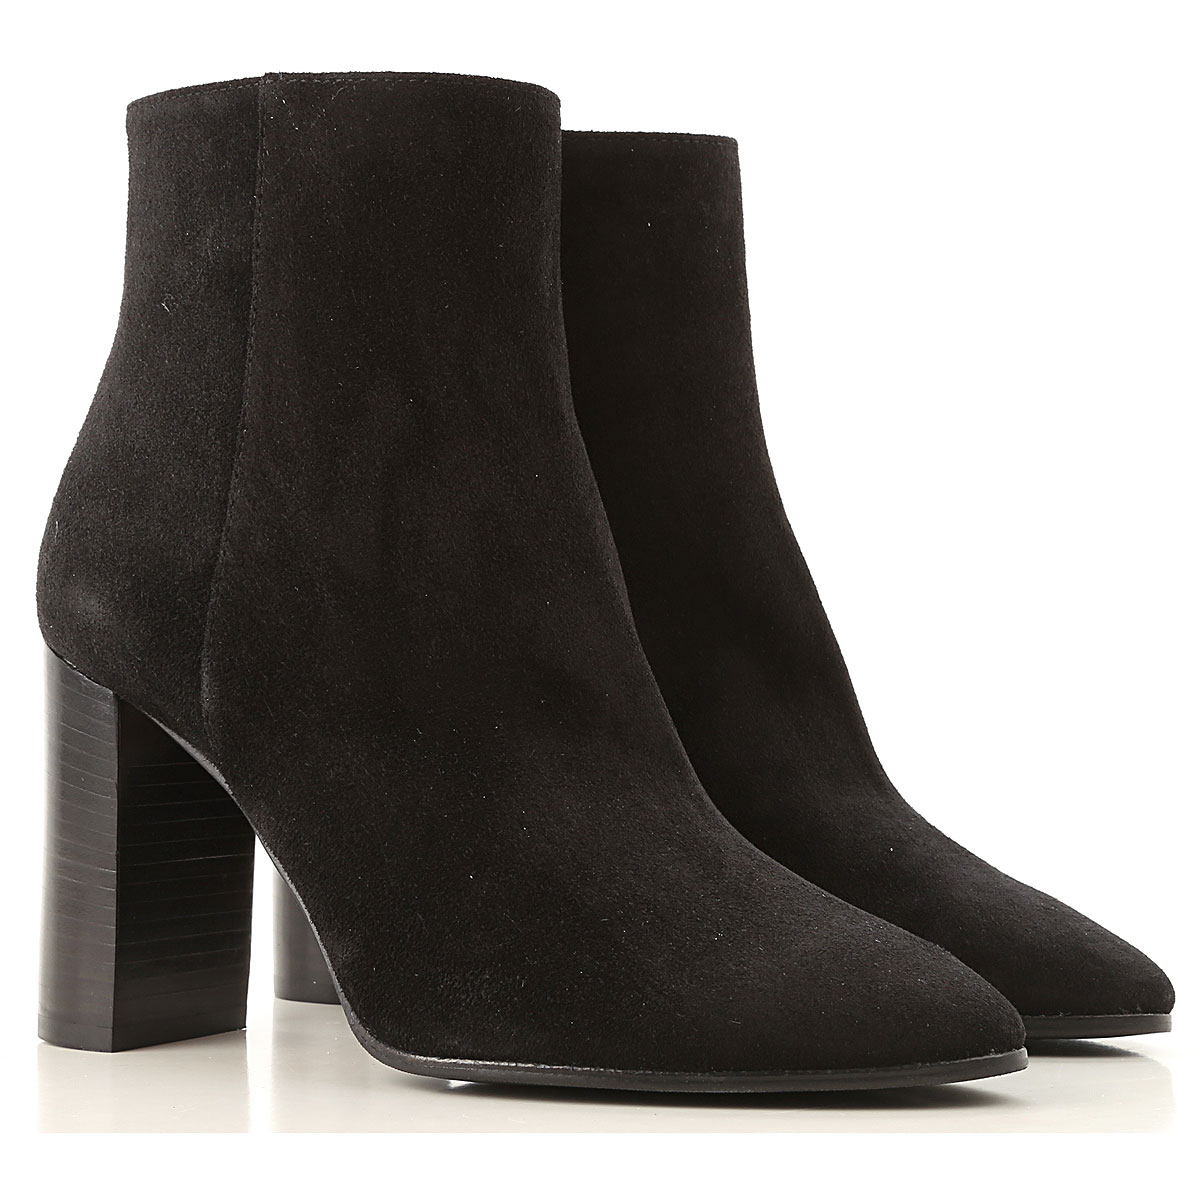 Roberto Festa Boots for Women, Booties On Sale, Black, Suede leather, 2019, 10 6 7 8 9